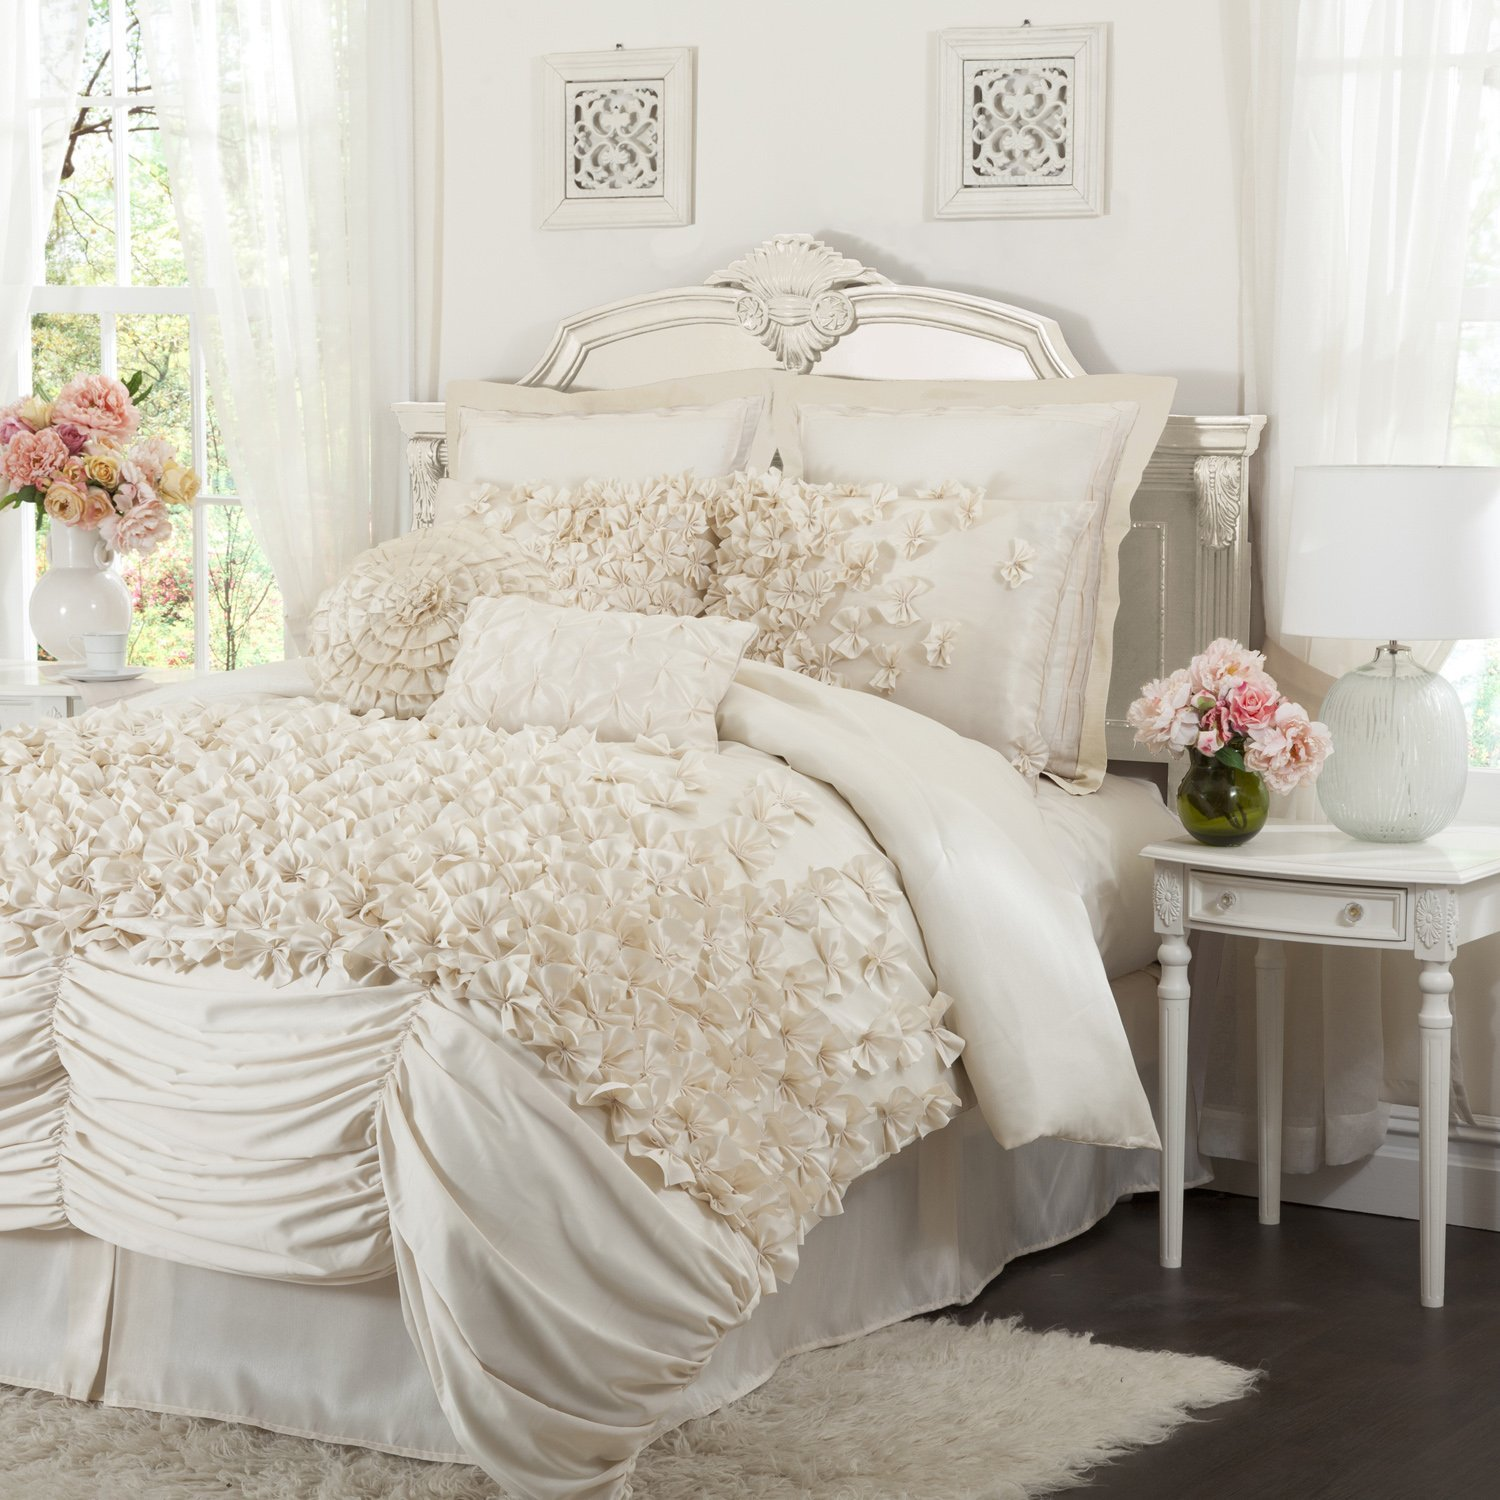 Mixing White And Ivory Bedding